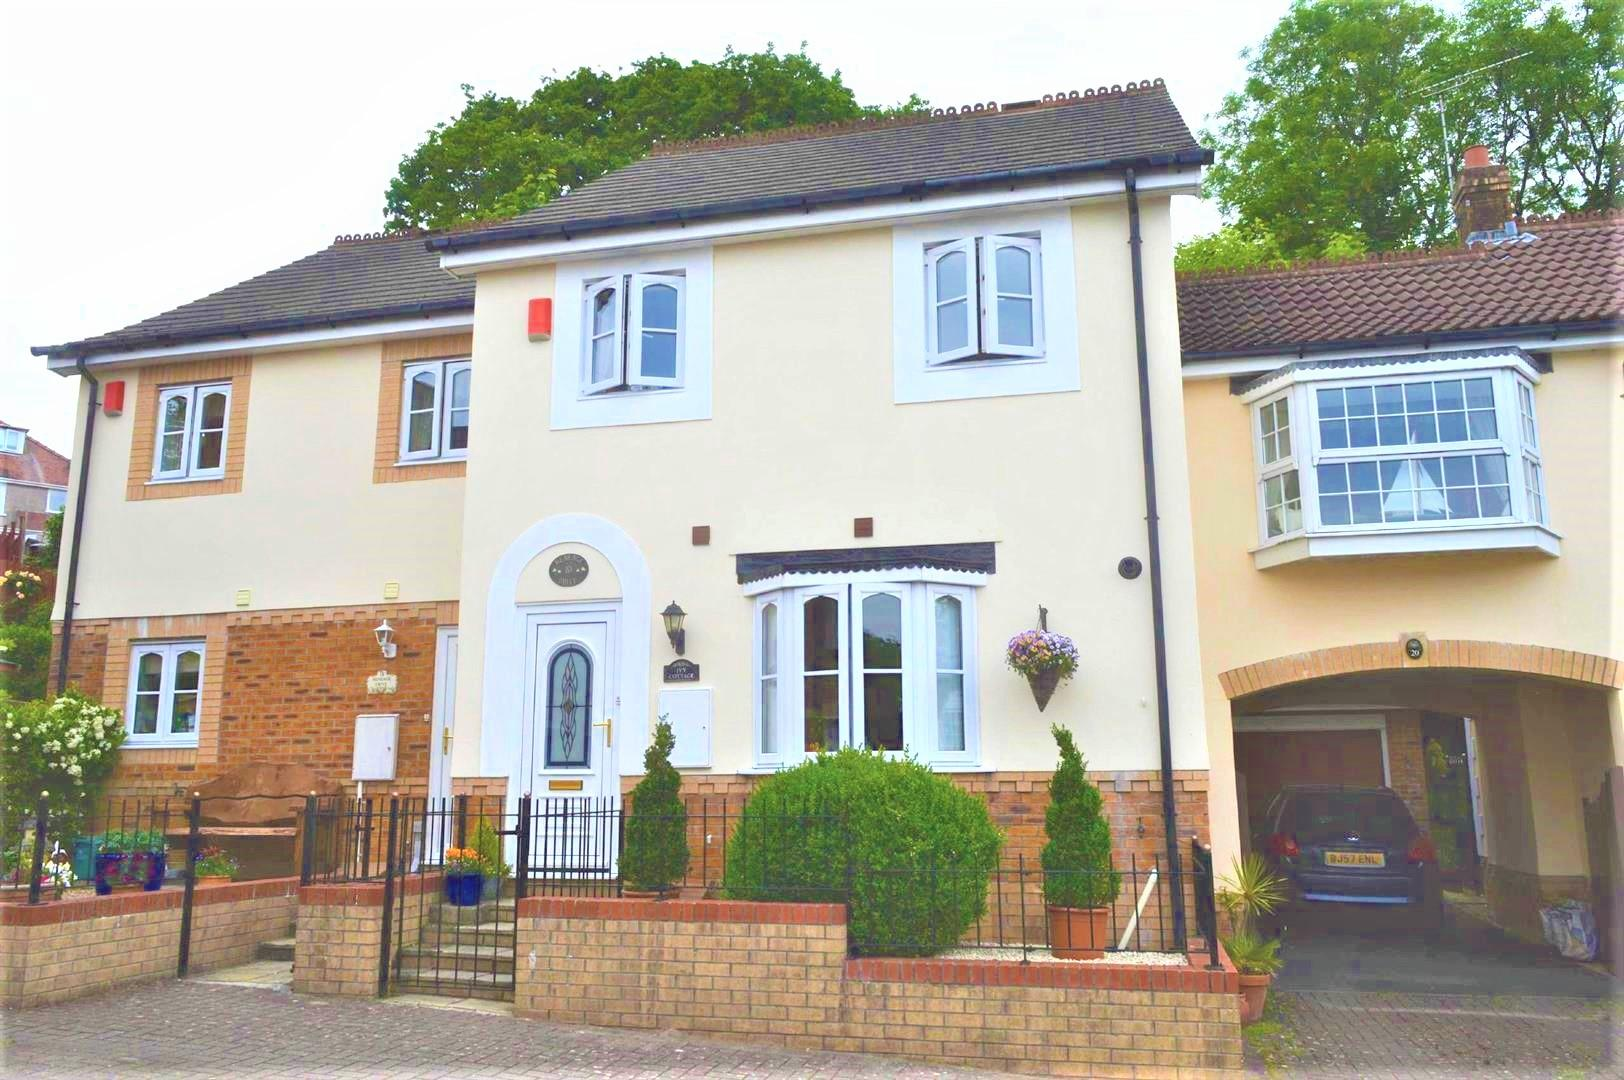 Heneage Drive, West Cross, Swansea, SA3 5BR